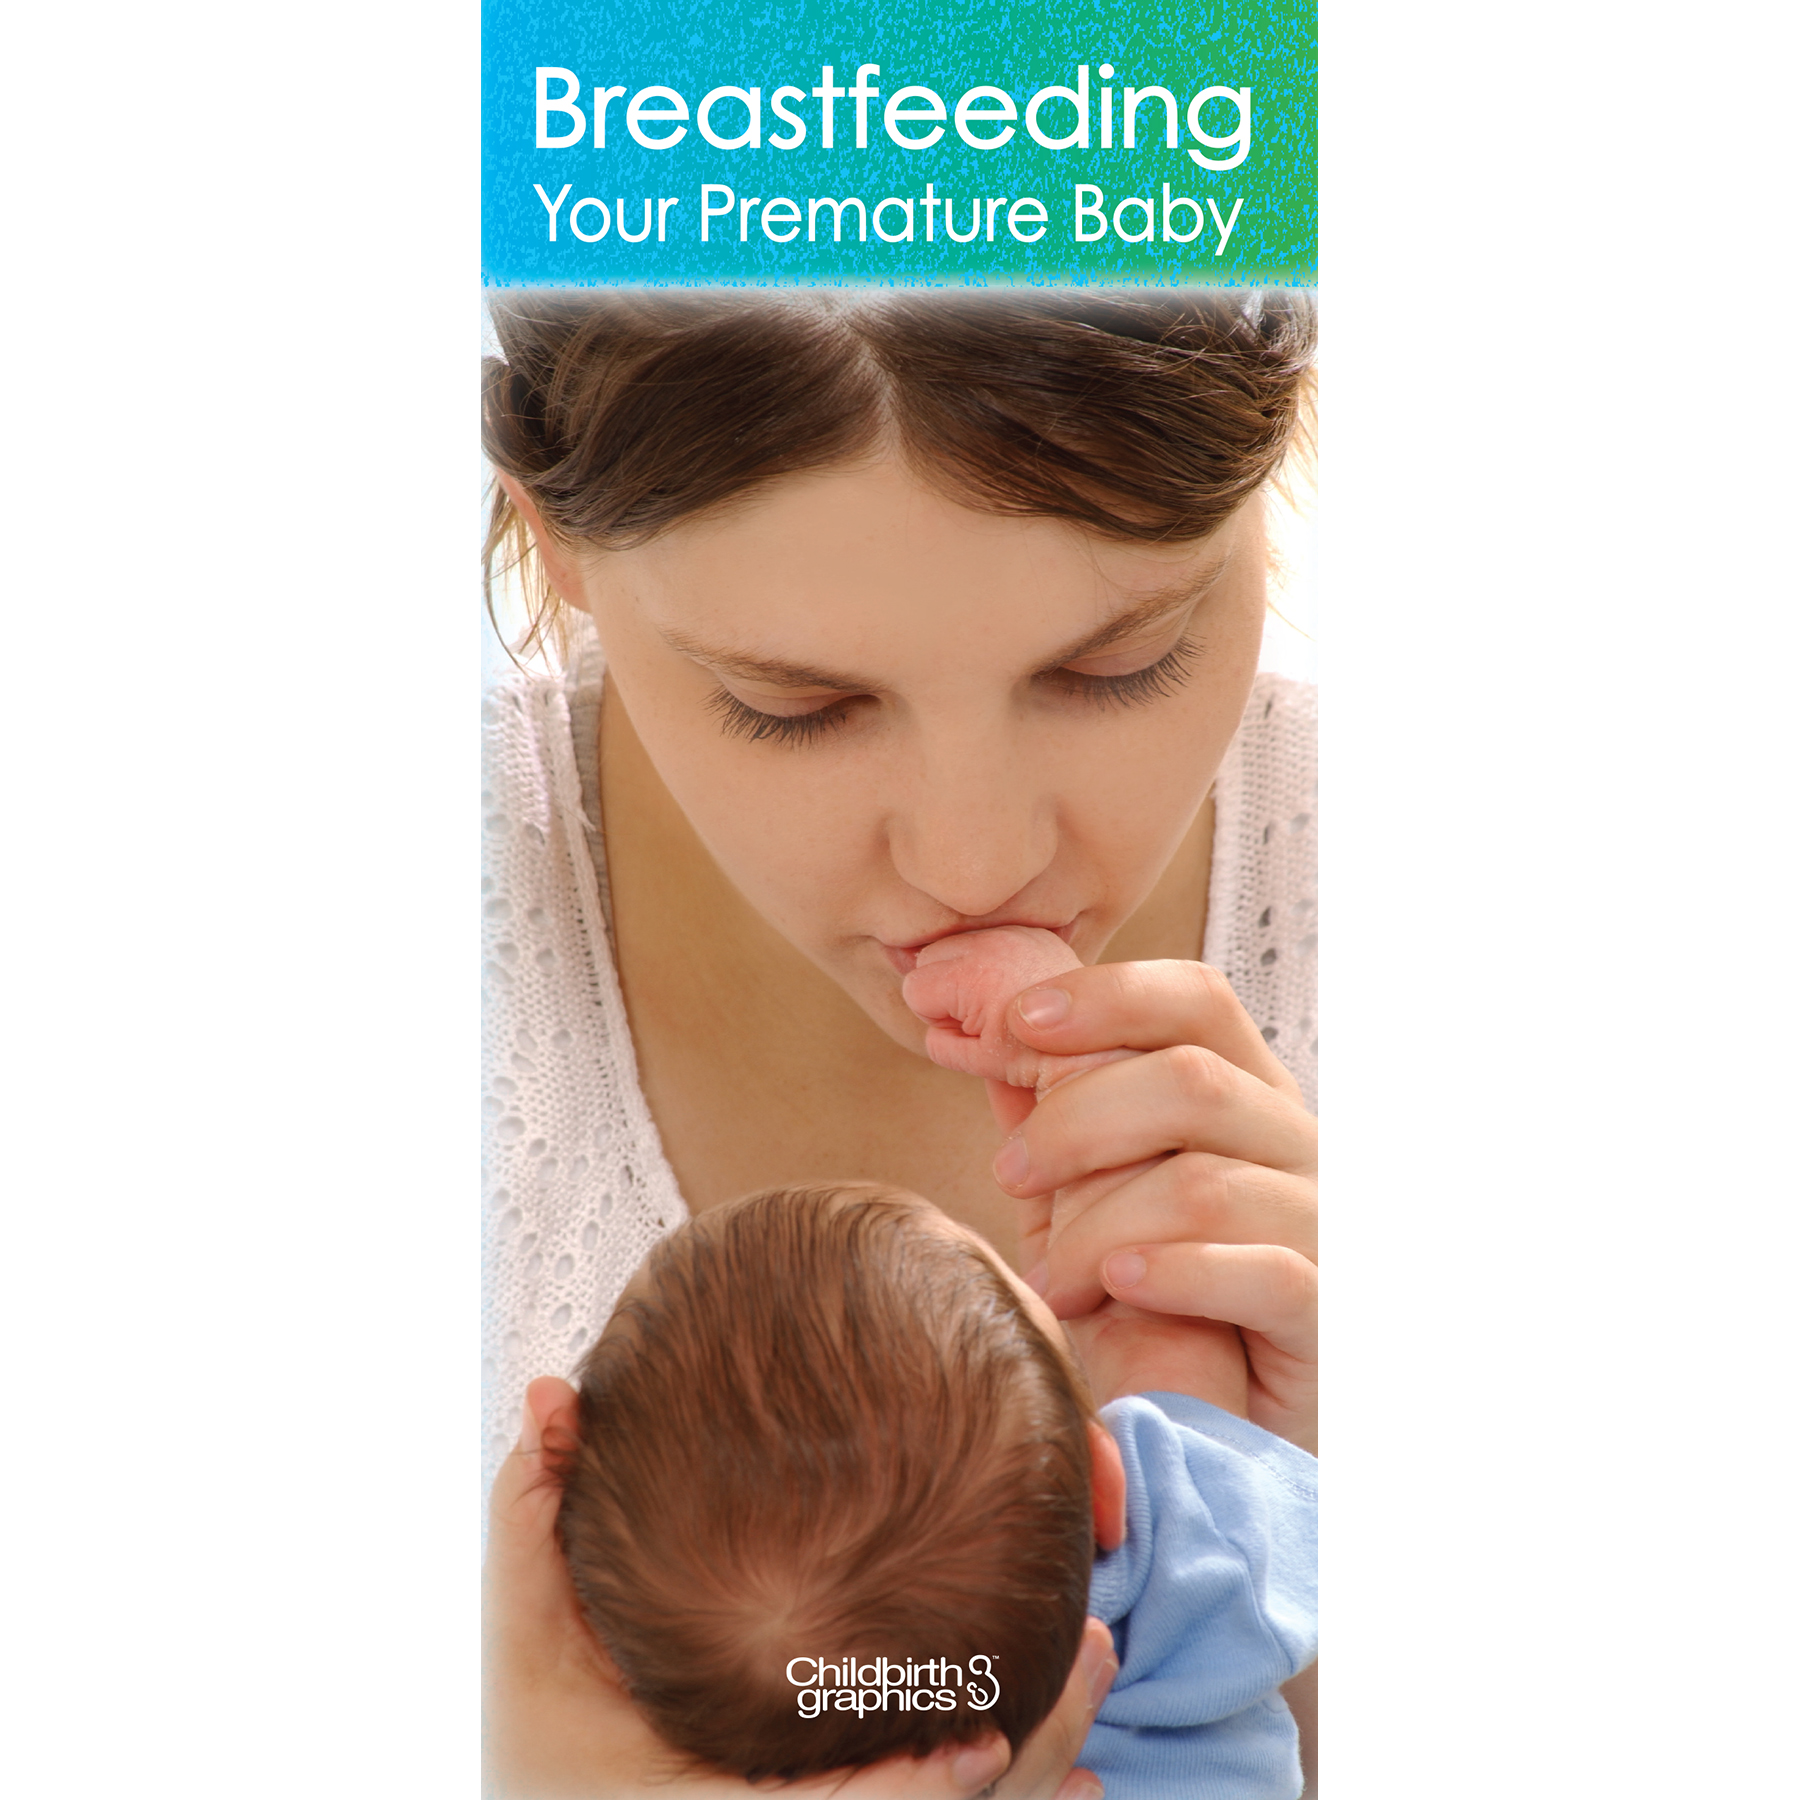 Breastfeeding Your Premature Baby Pamphlet for patient education from Childbirth Graphics, lactation education handout, 38005